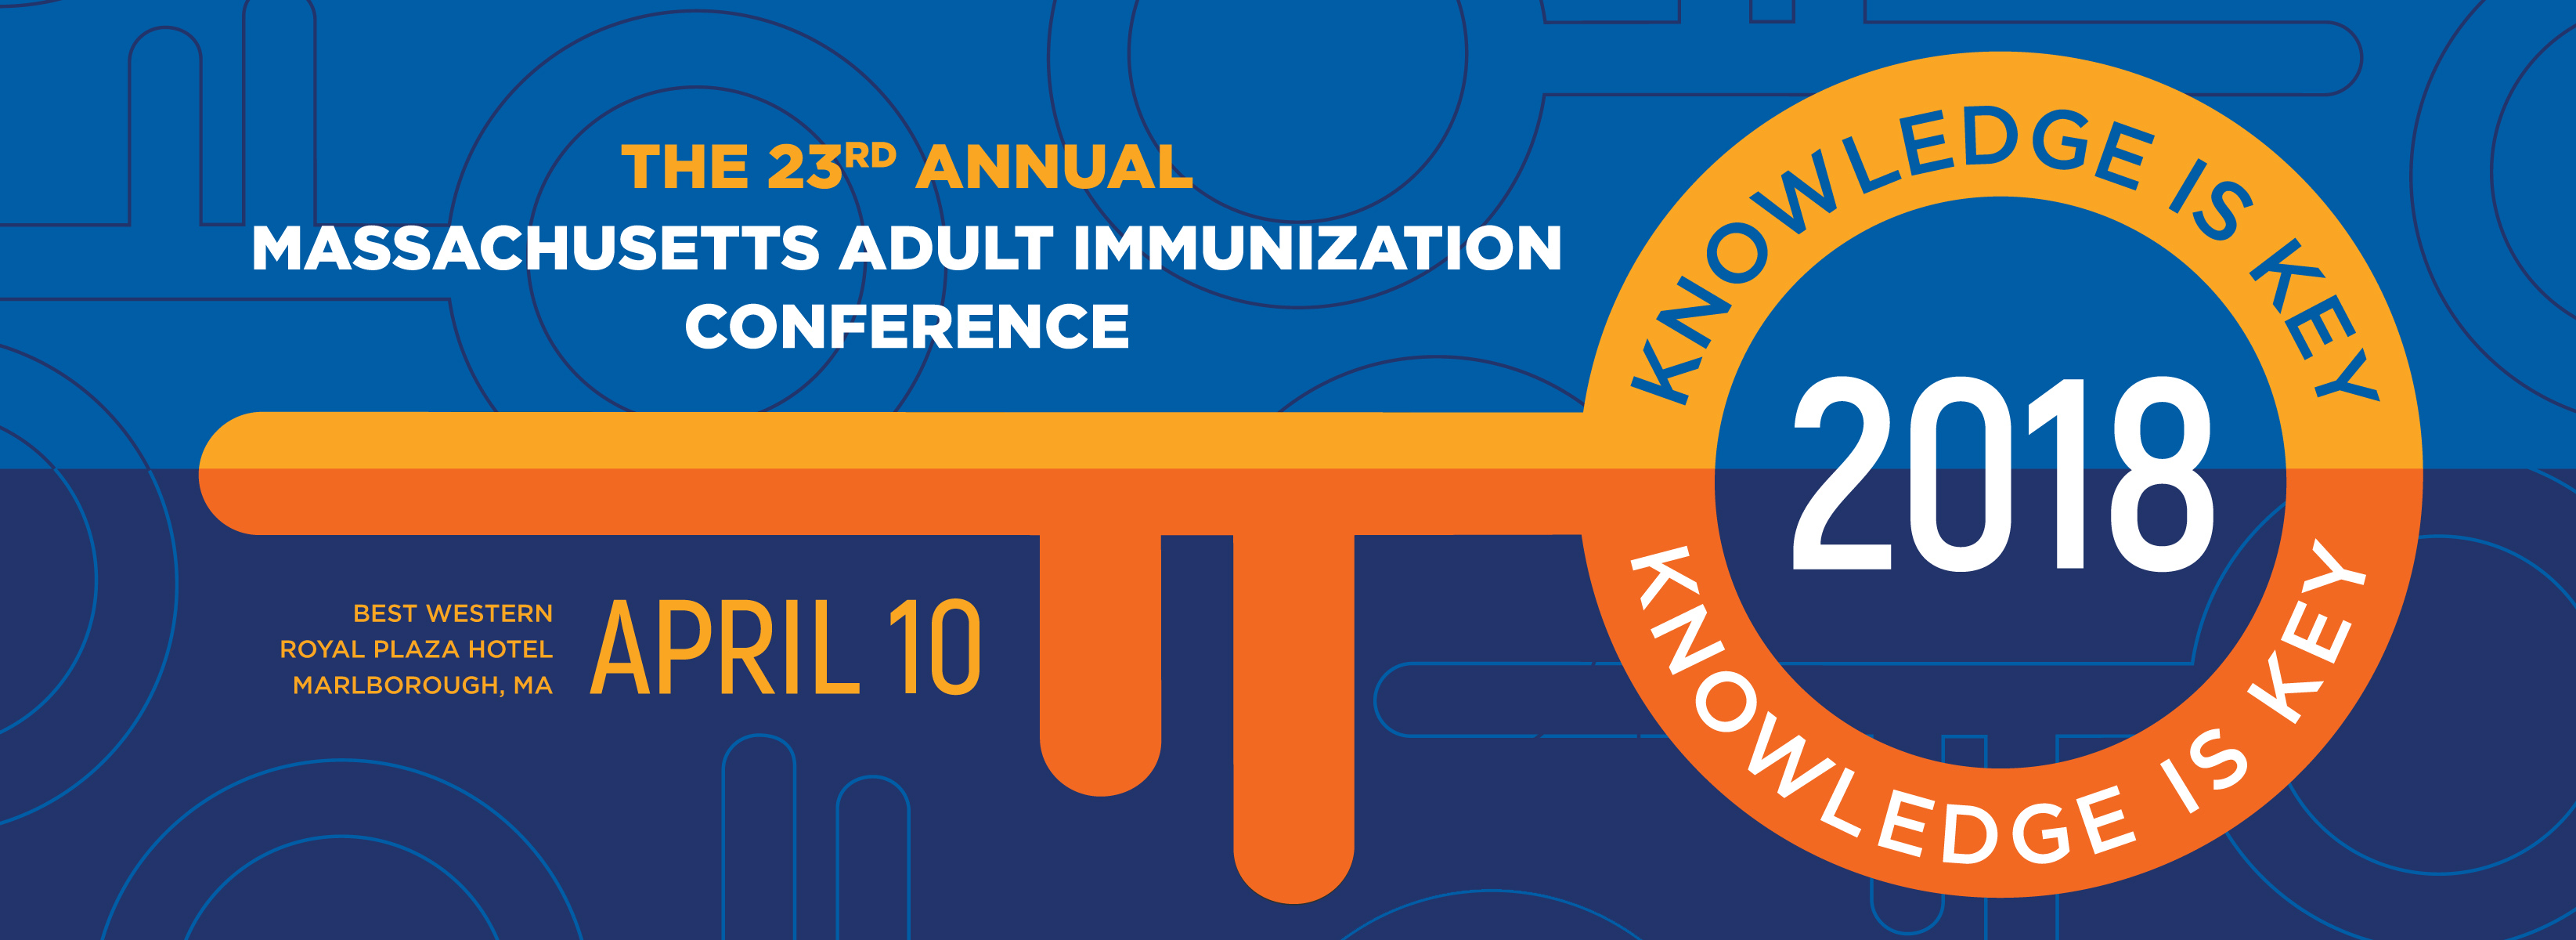 23rd Annual Massachusetts Adult Immunization Conference